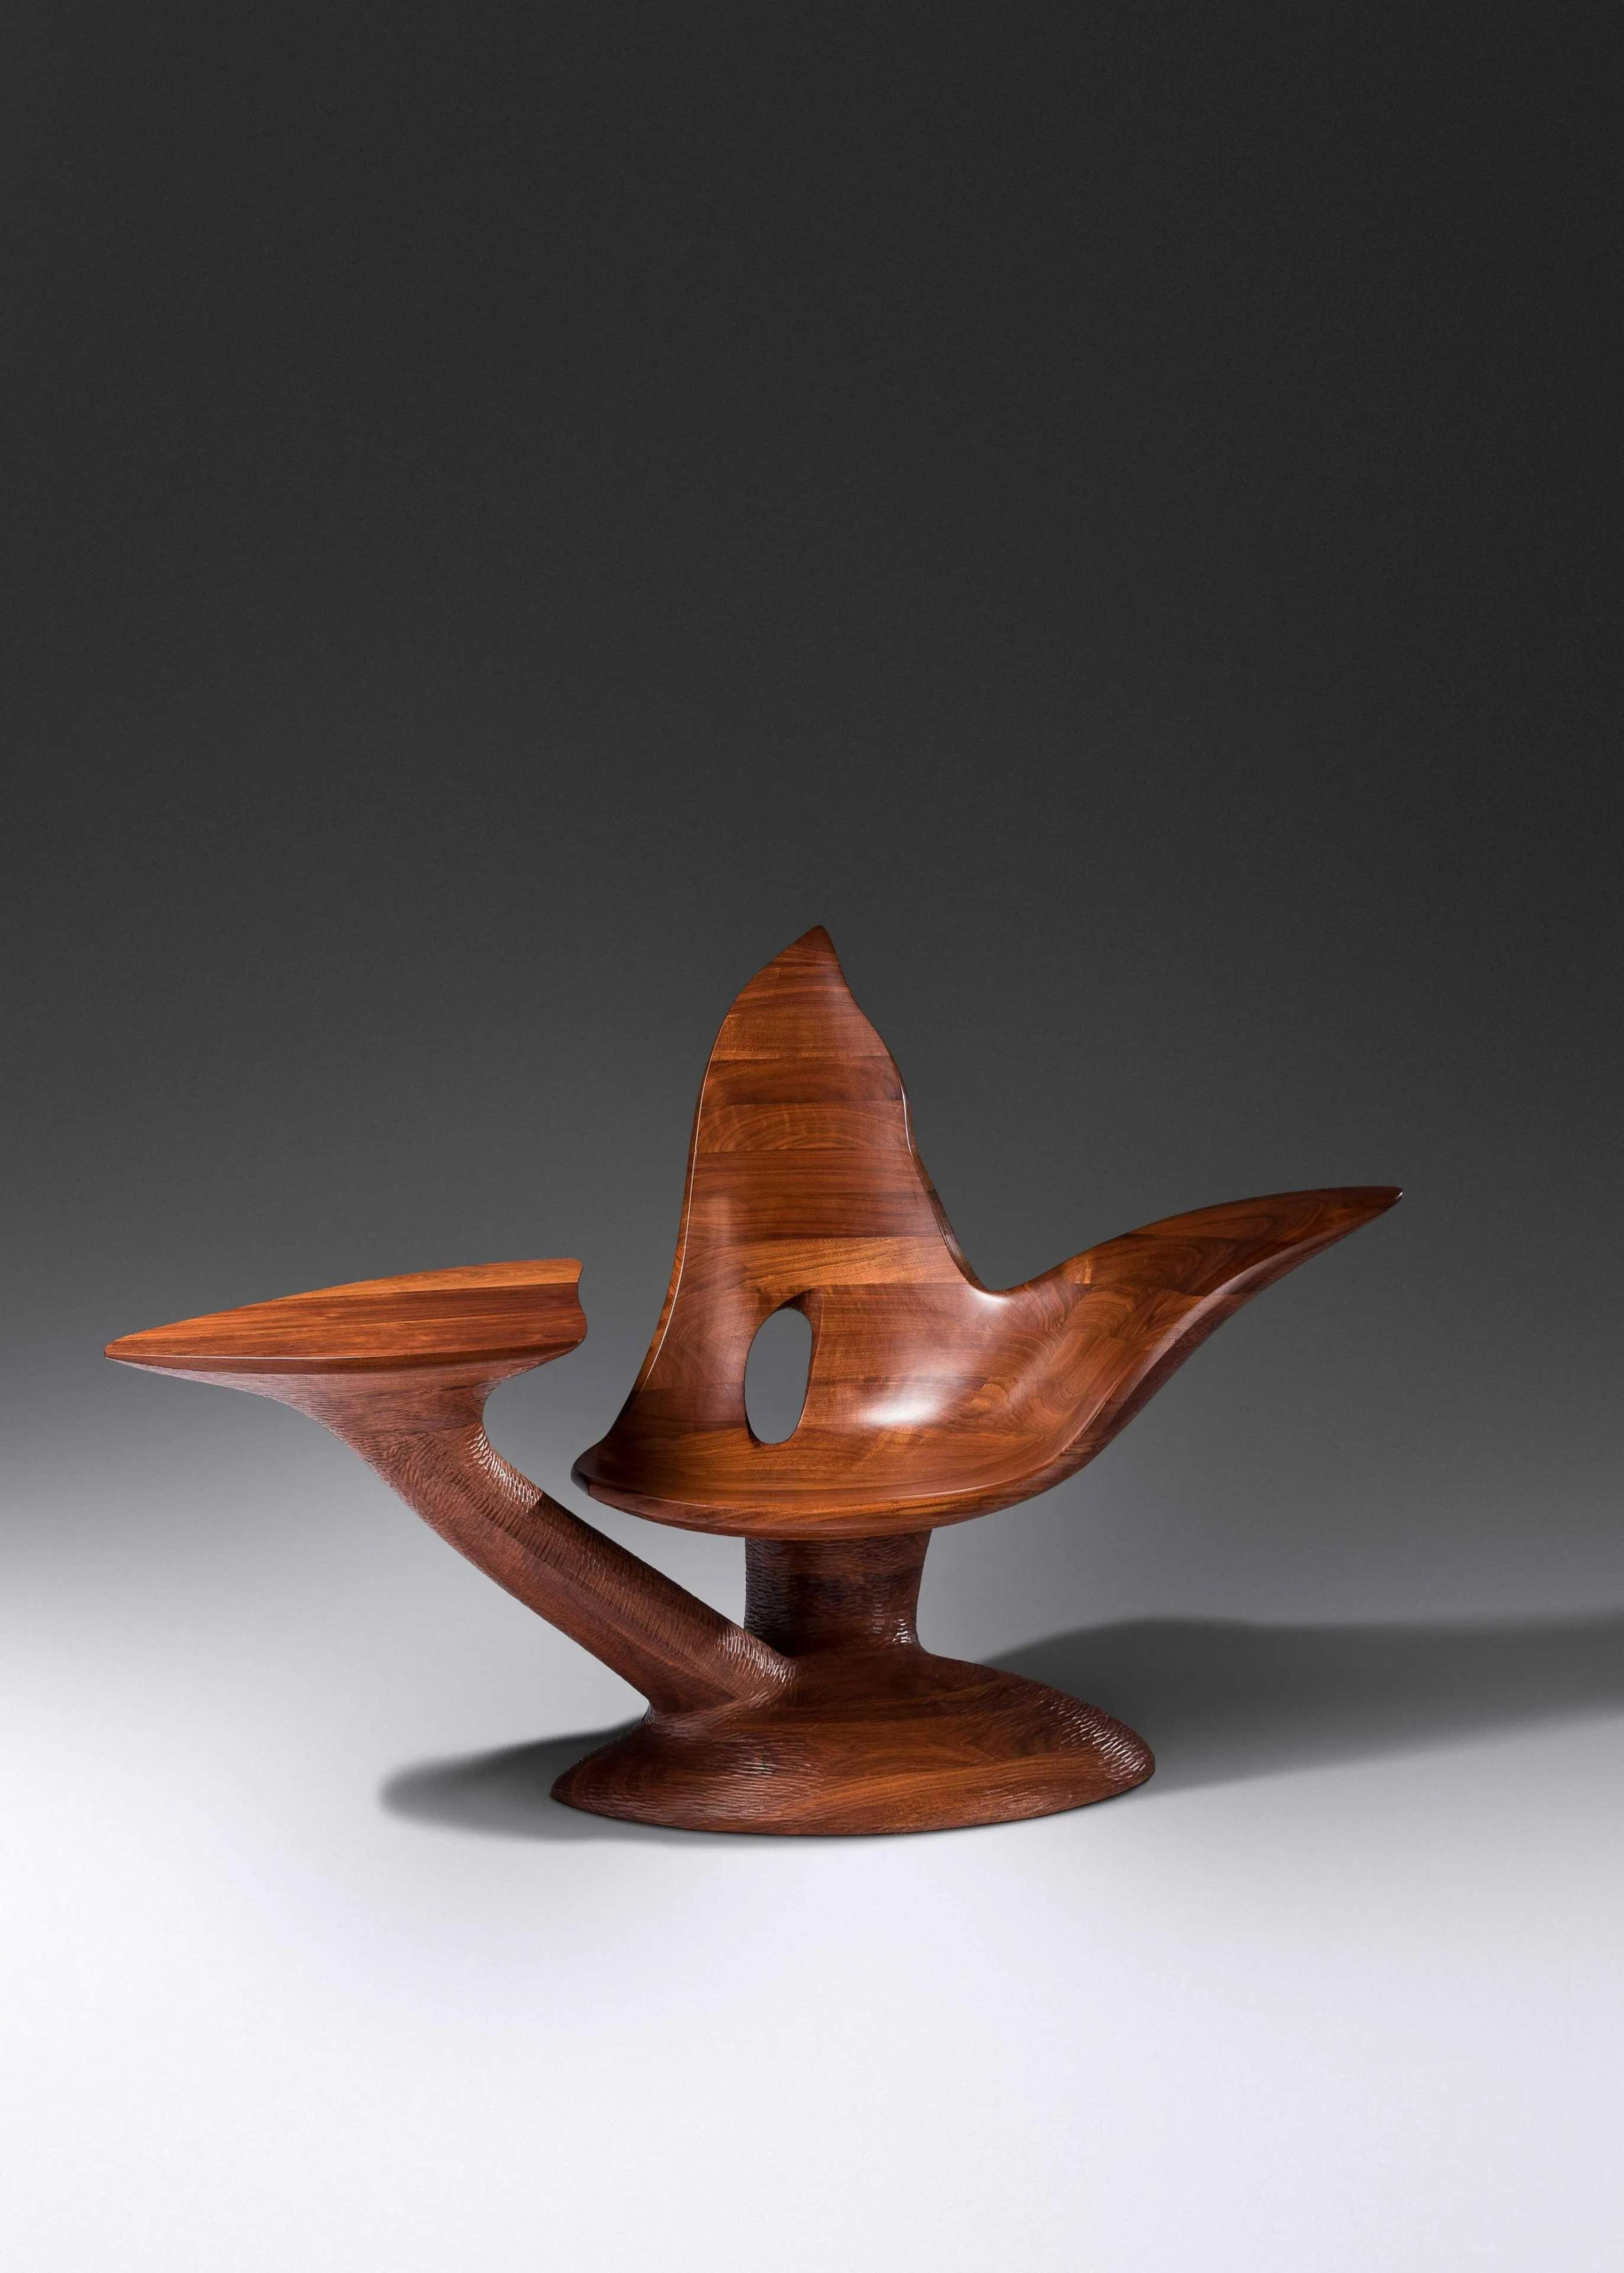 Wendell Castle (1932-2018) Too Soon Chair, 2005, $75,000. Image courtesy Hindman